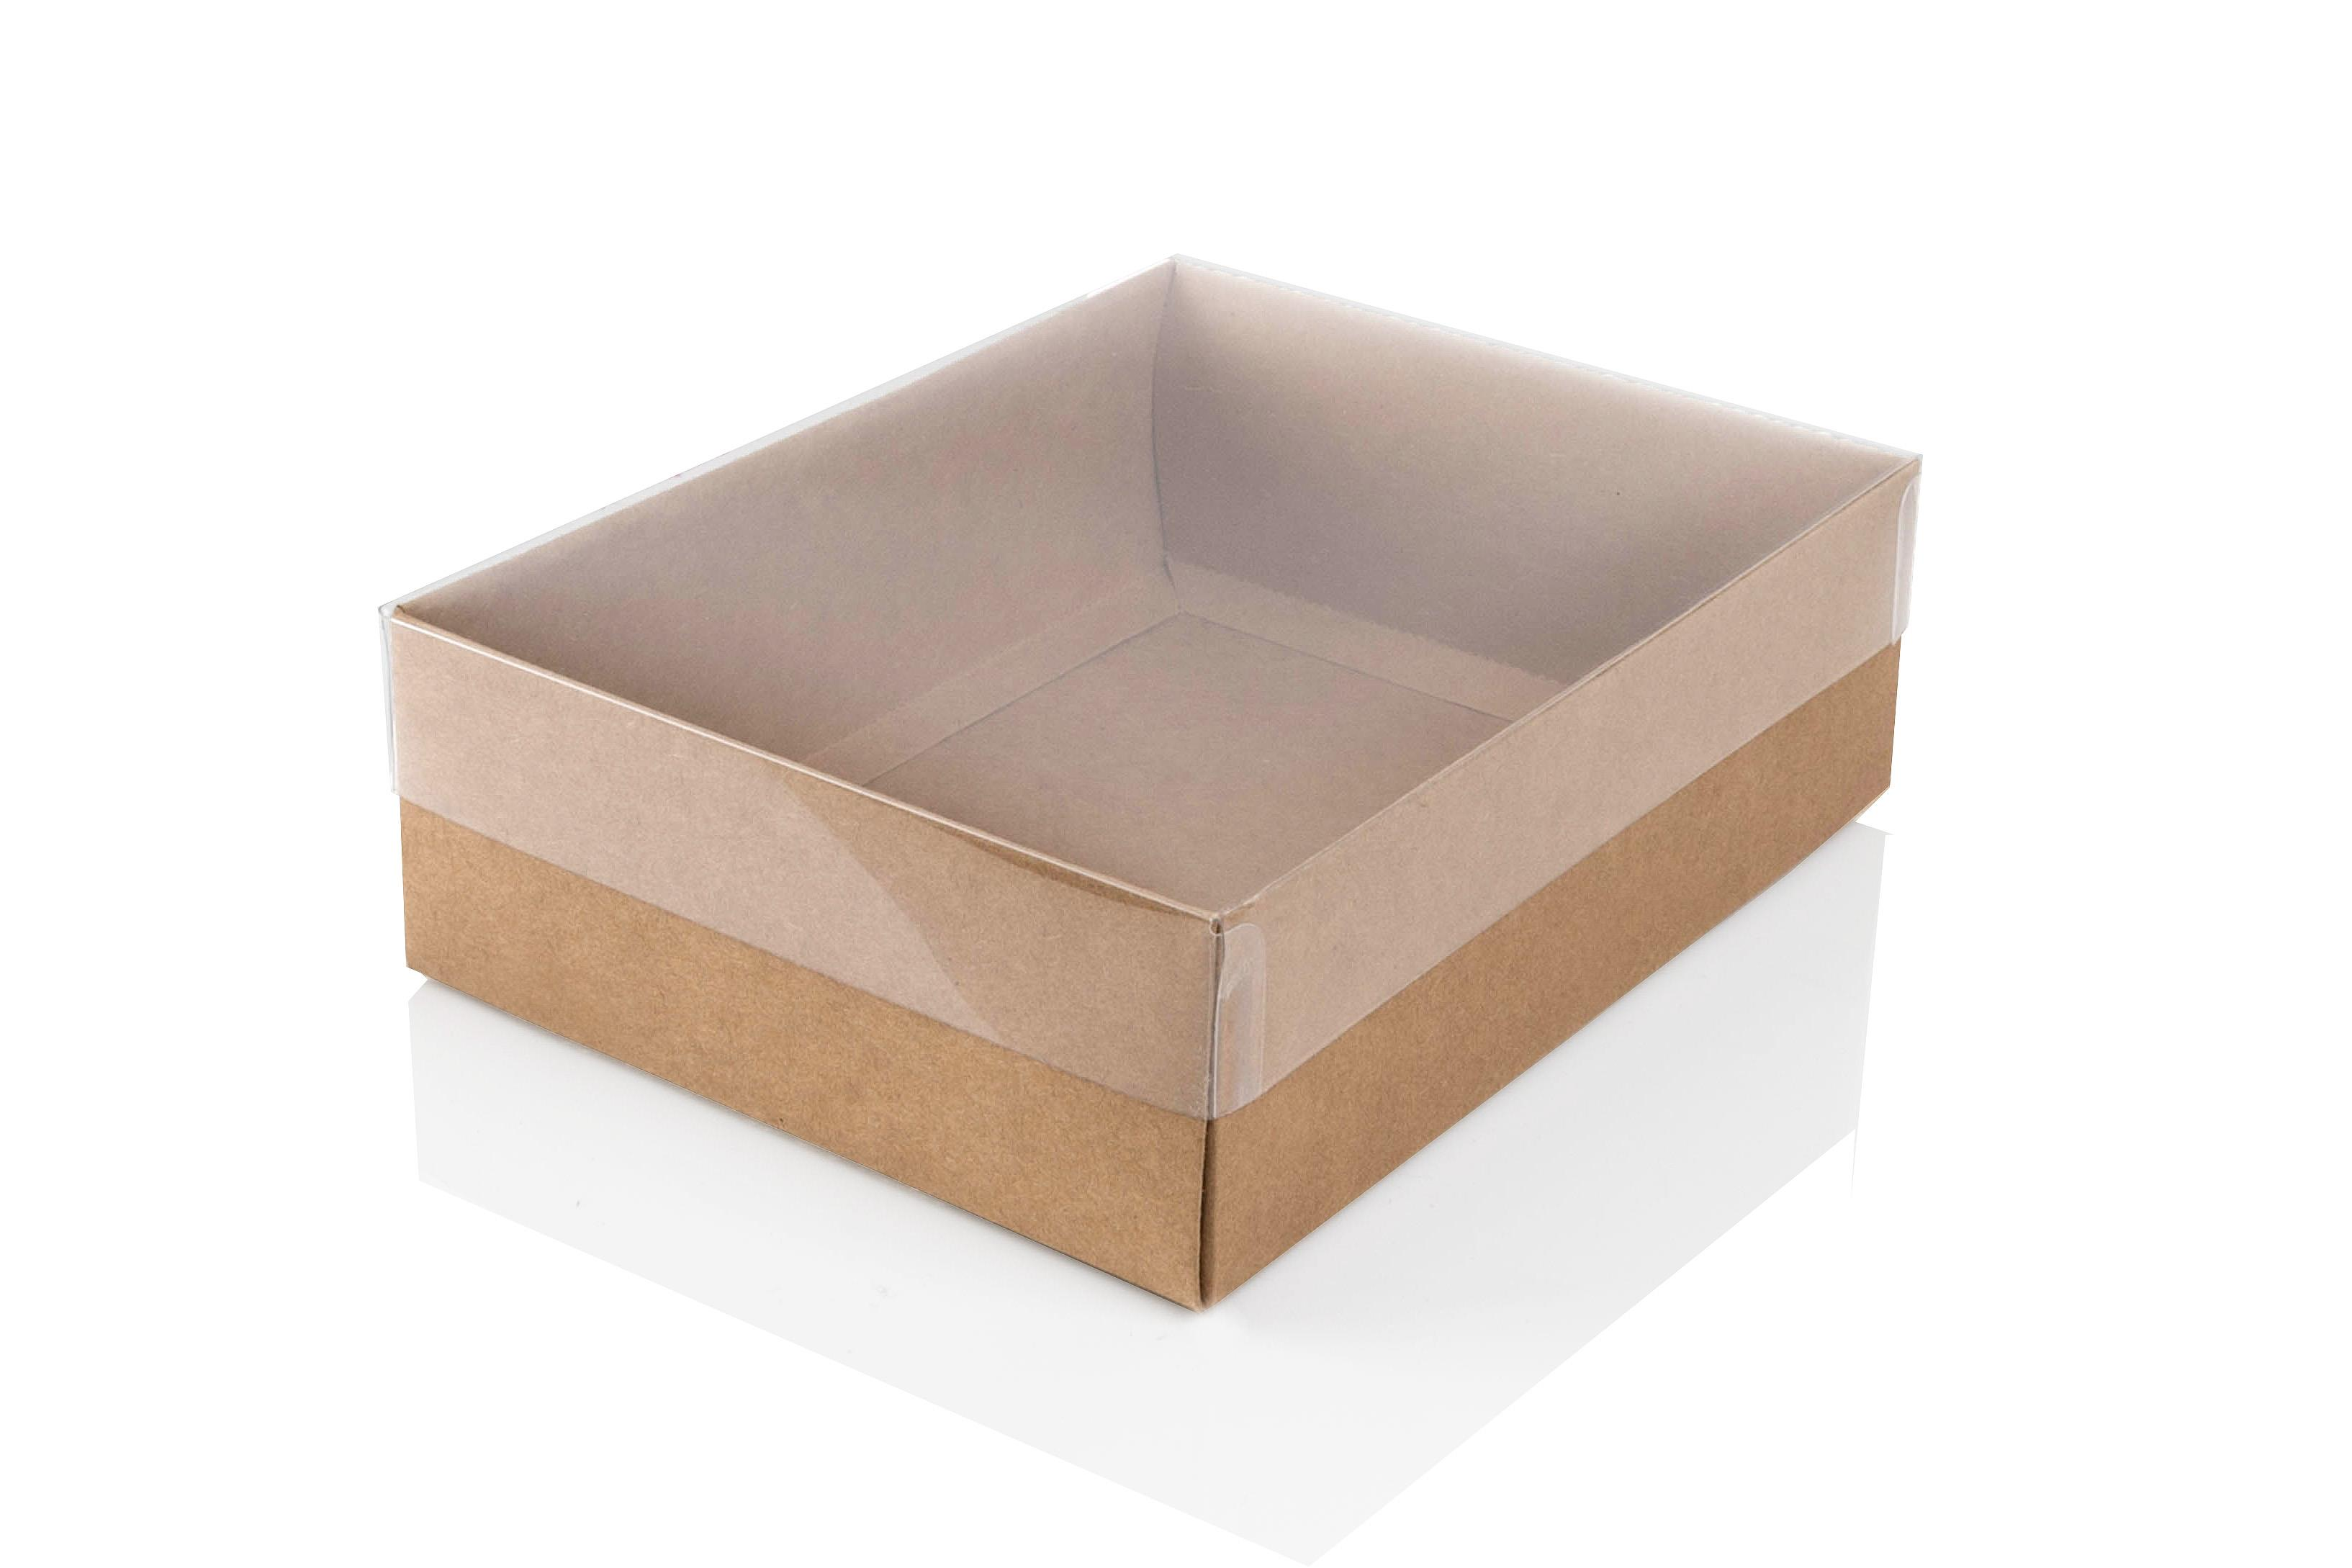 large kraft flat packed recycled gift box with clear lid pack of 50 165 x 125 x 50mm clrkr165. Black Bedroom Furniture Sets. Home Design Ideas